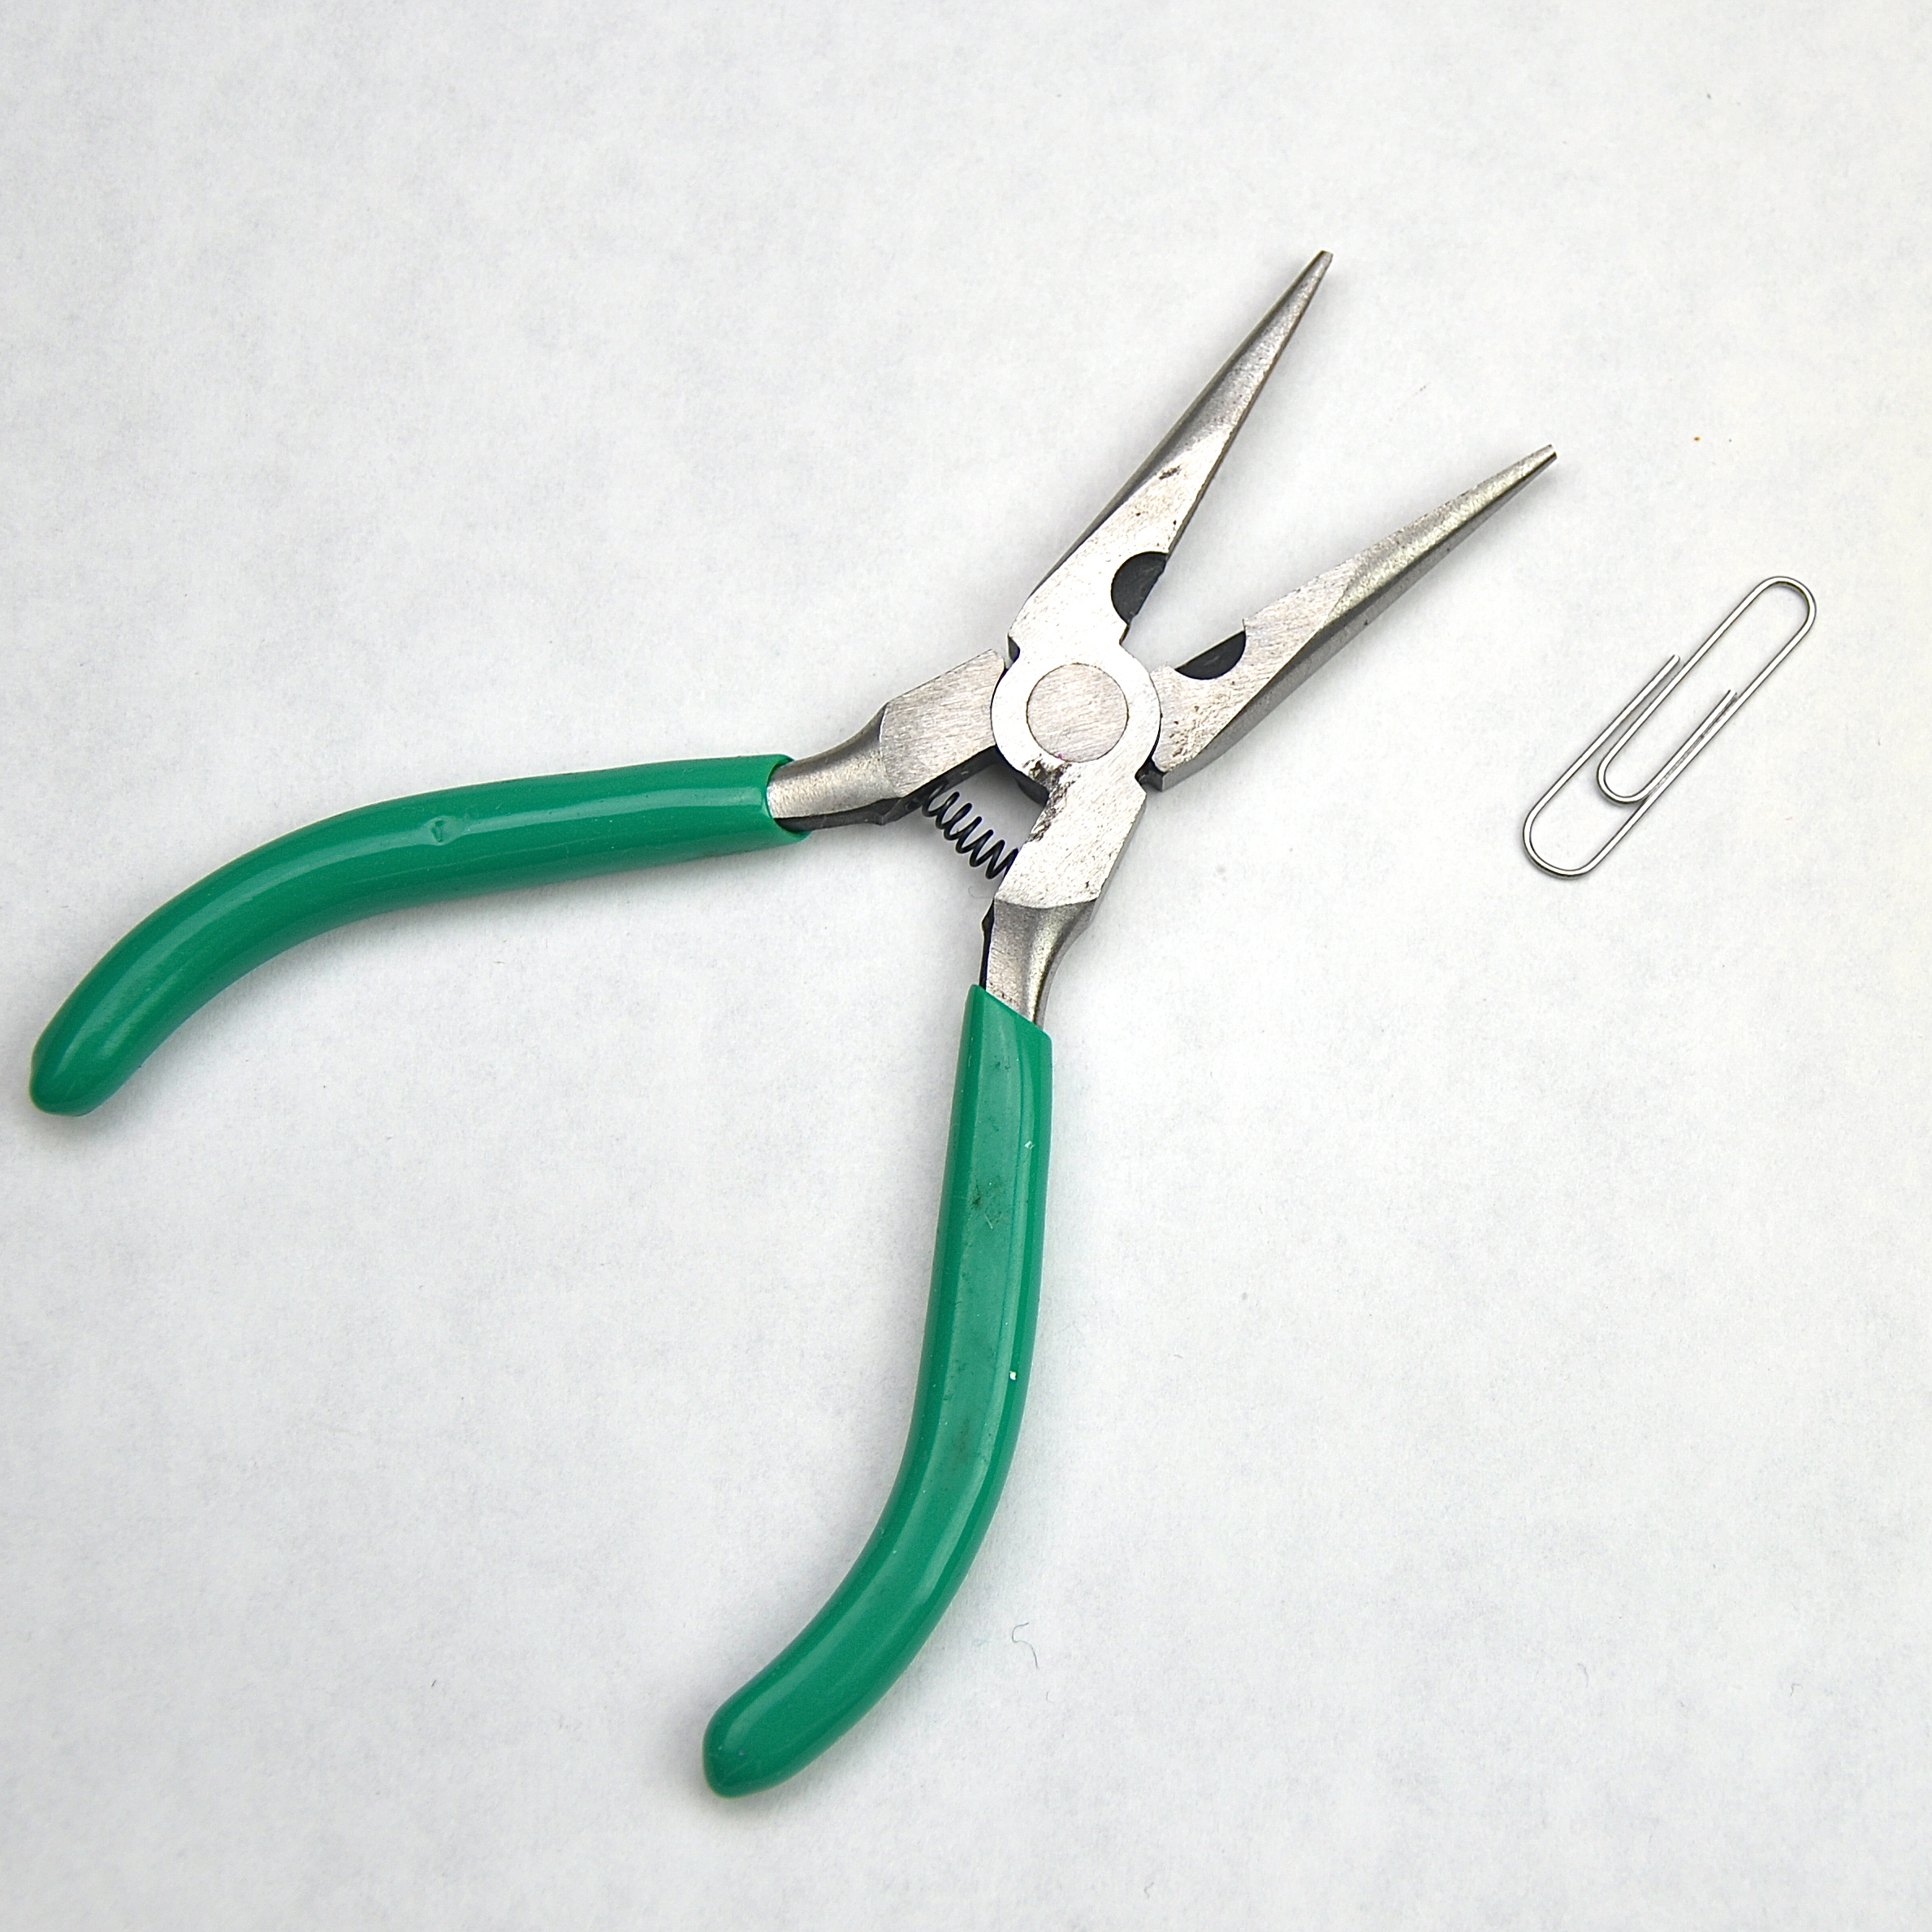 Picture of Getting Your Paperclips Ready